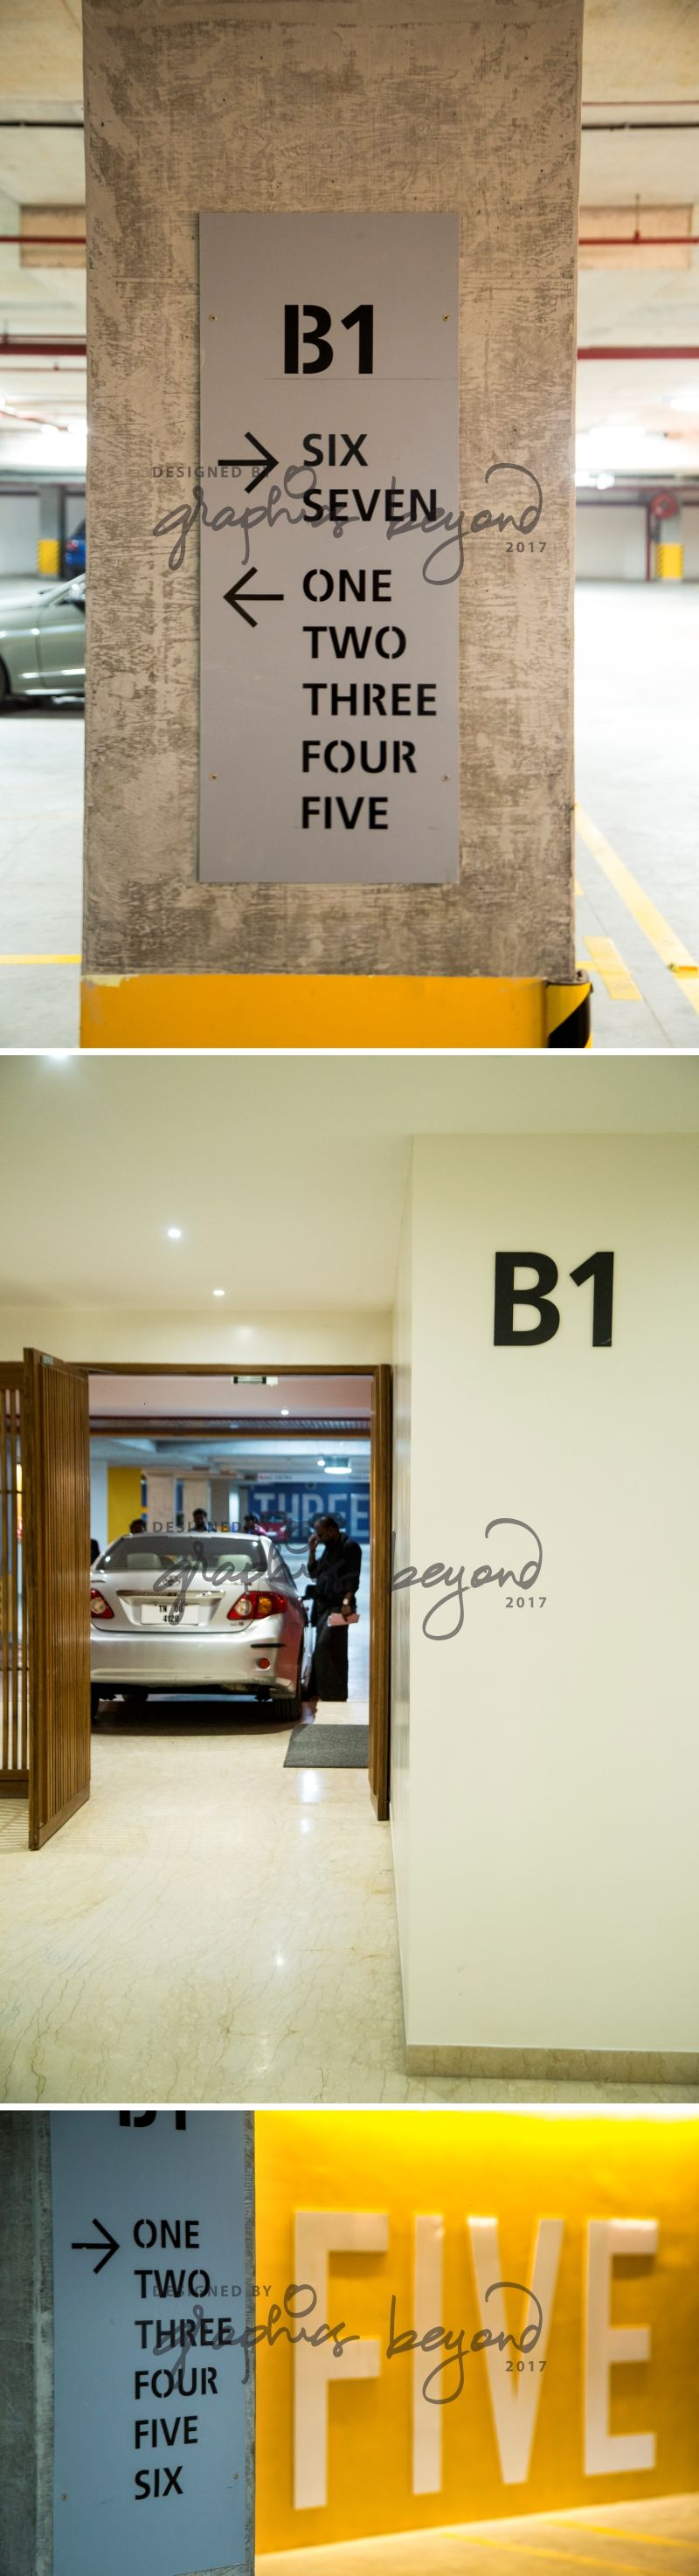 Pin on Wayfinding & Signages